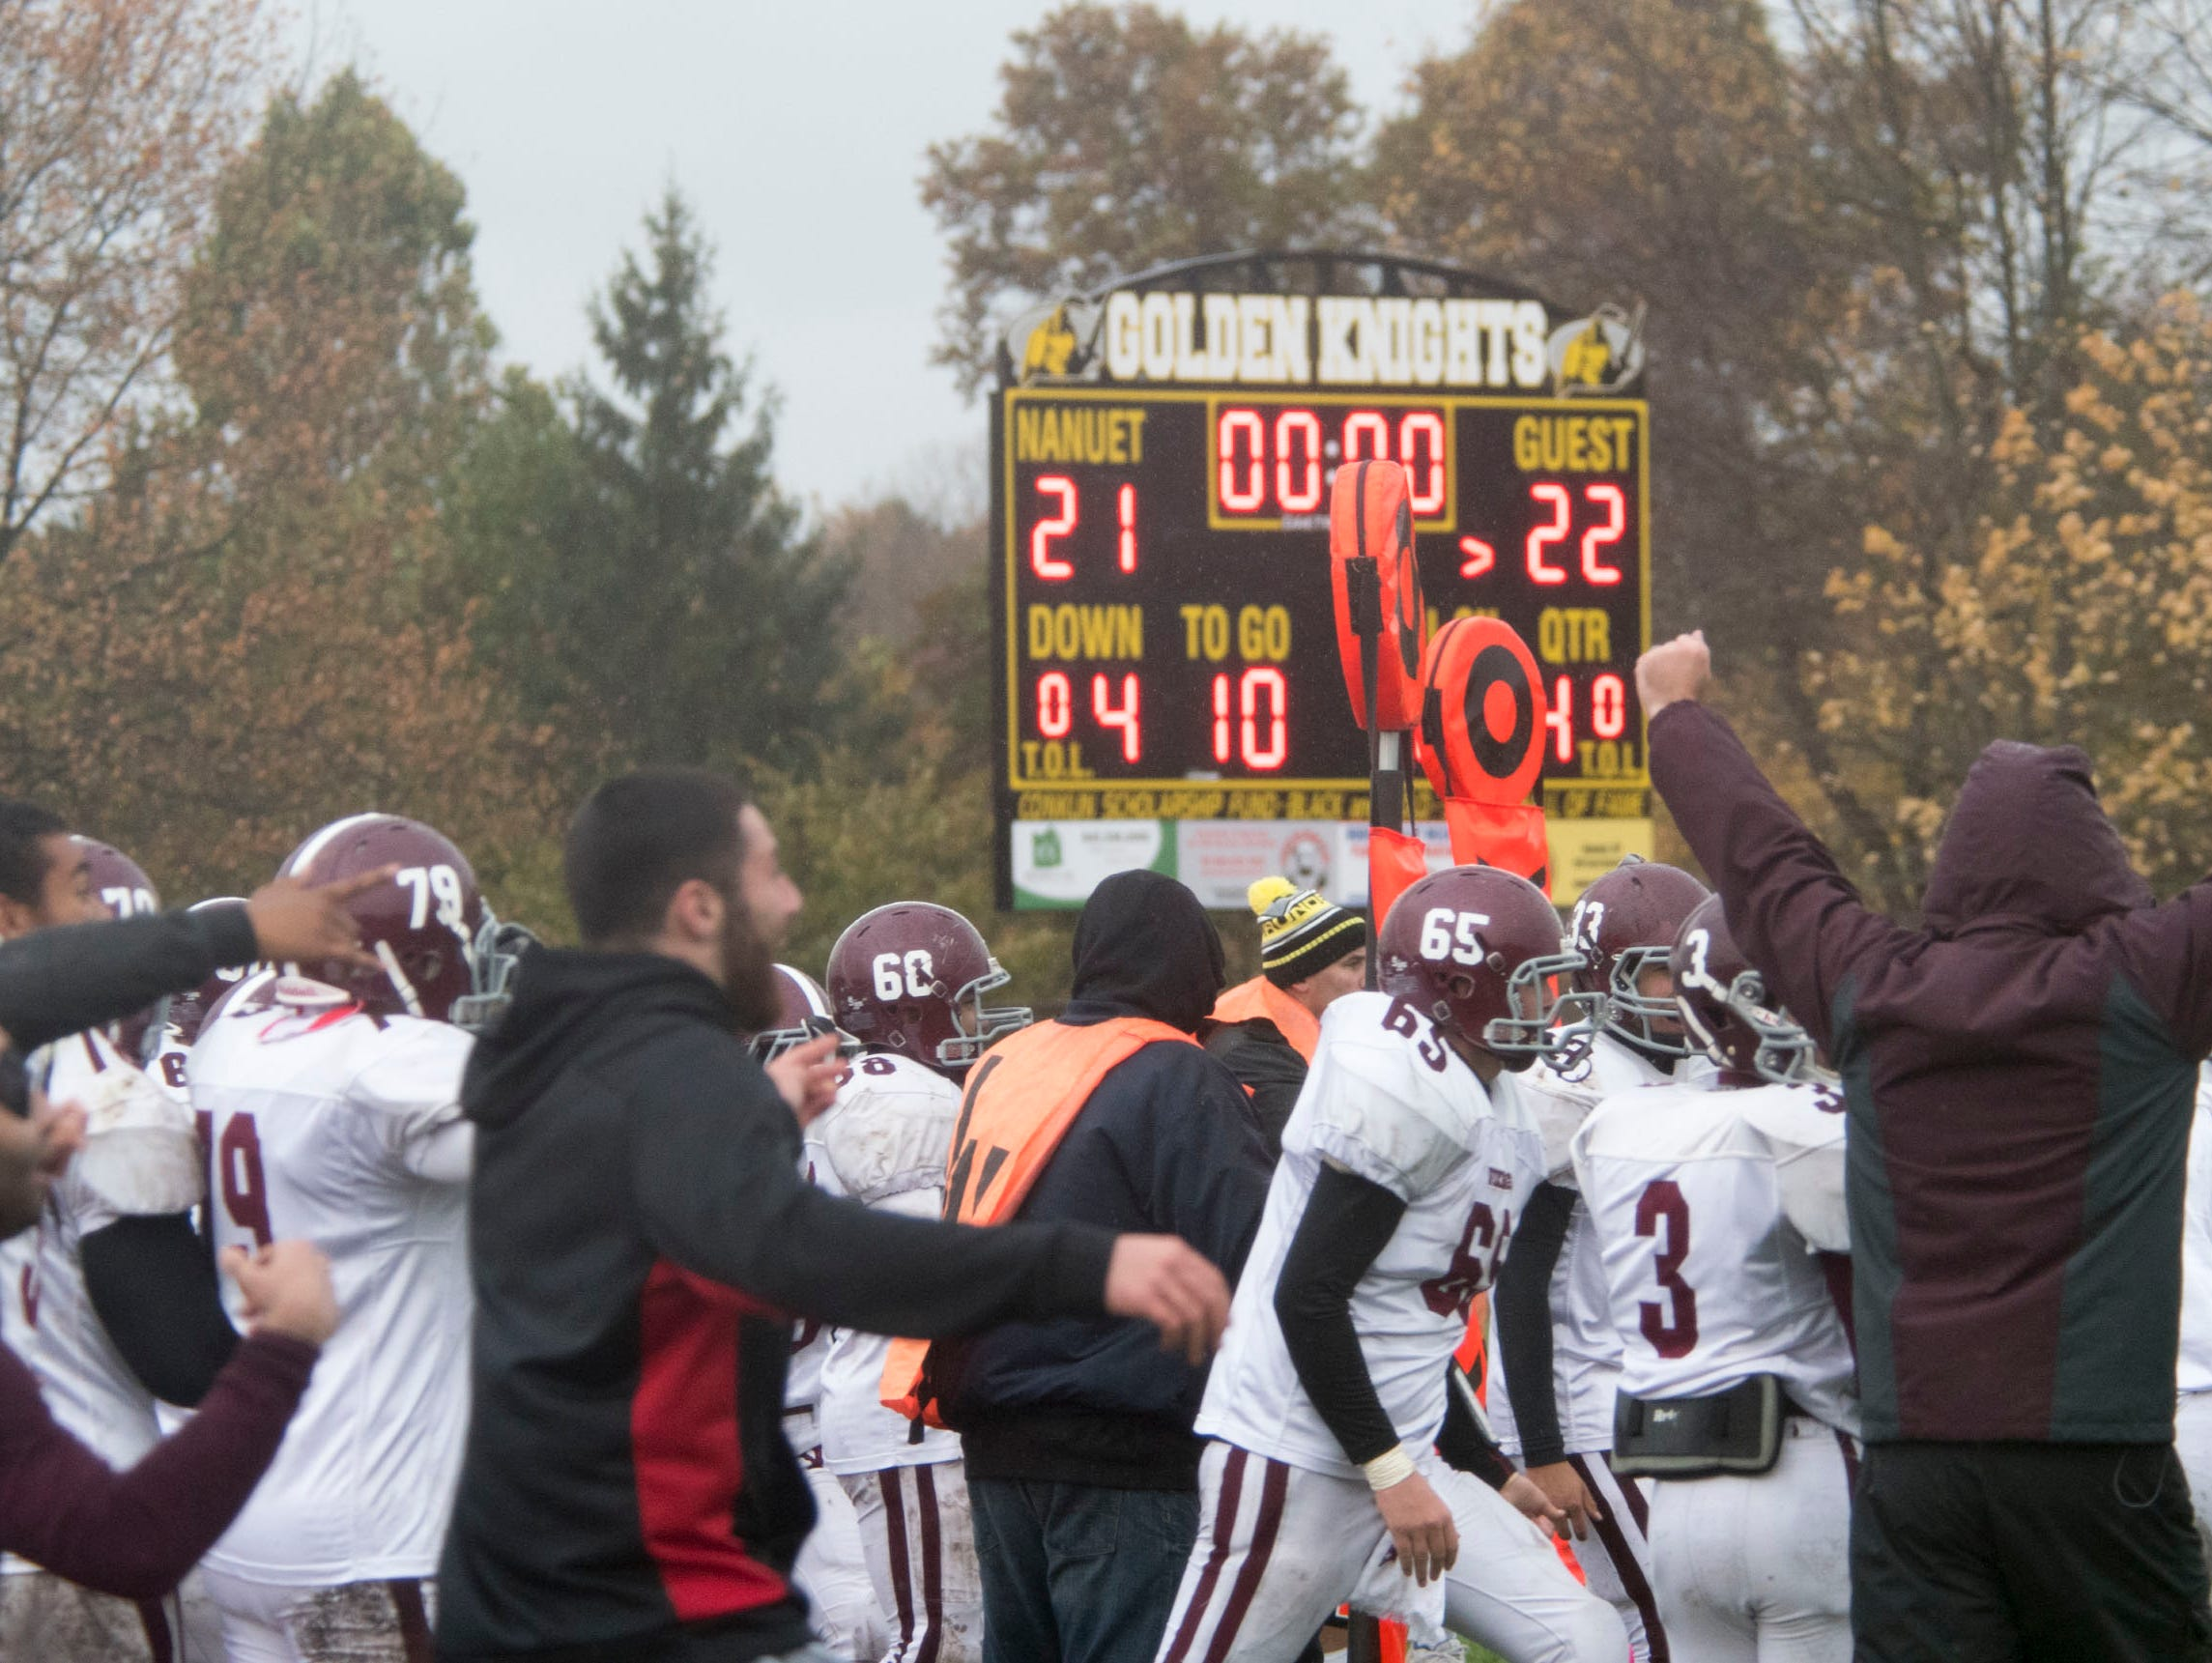 Valhalla coaches and players celebrate as the scoreboard tells the story of the Vikings' win over Nanuet on Saturday.